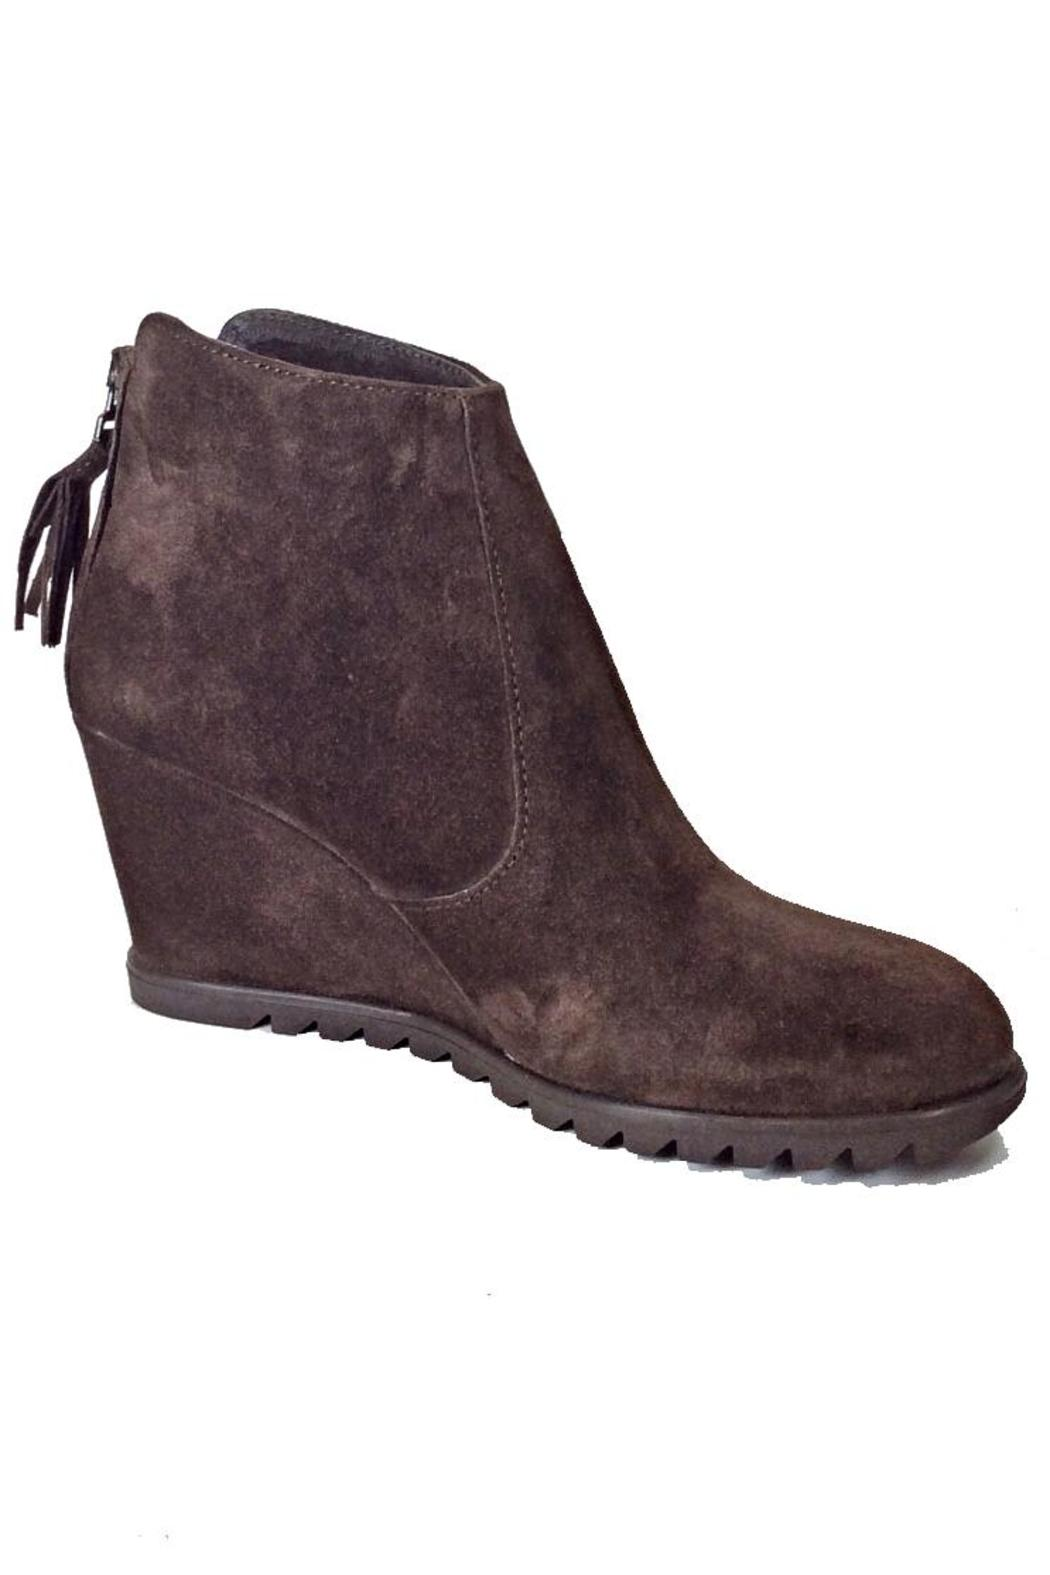 alpe suede wedge boot from highlands and islands by